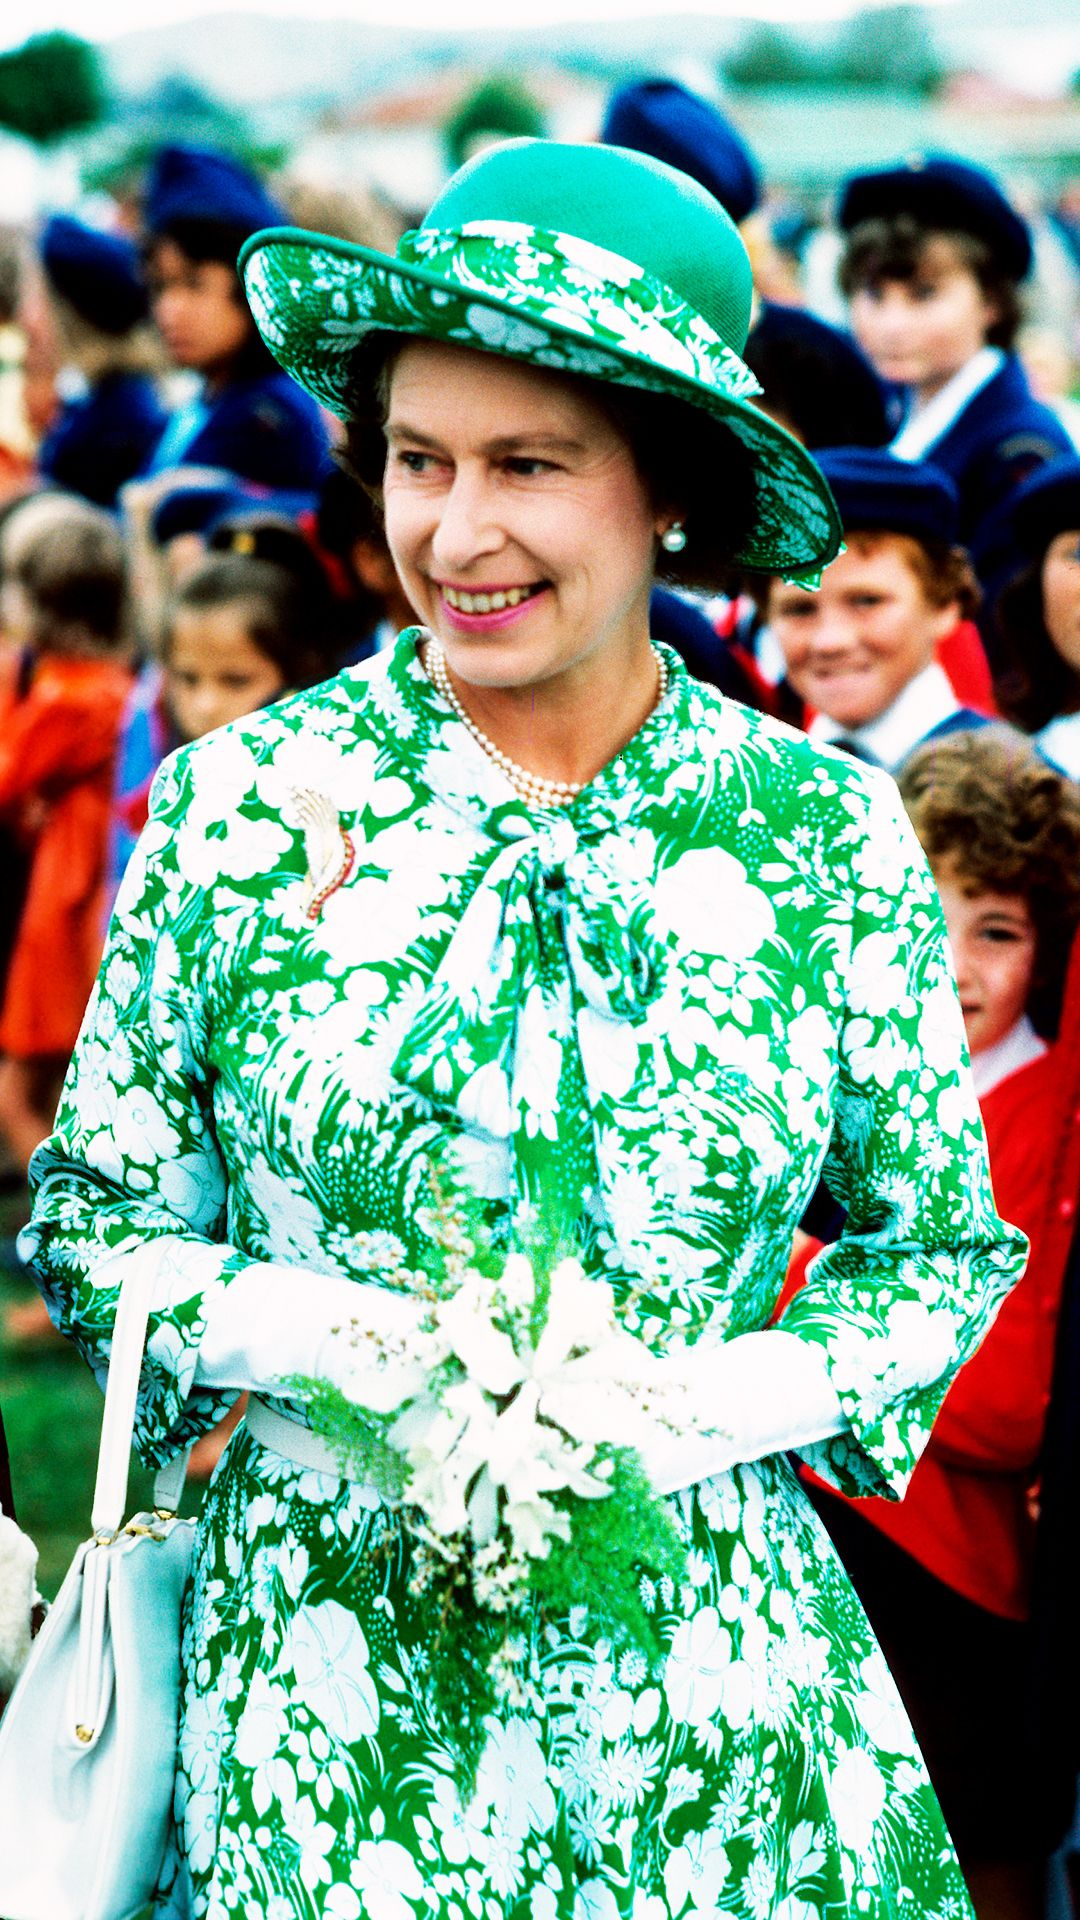 Queen Elizabeth II's Style So Much More Than Matchy